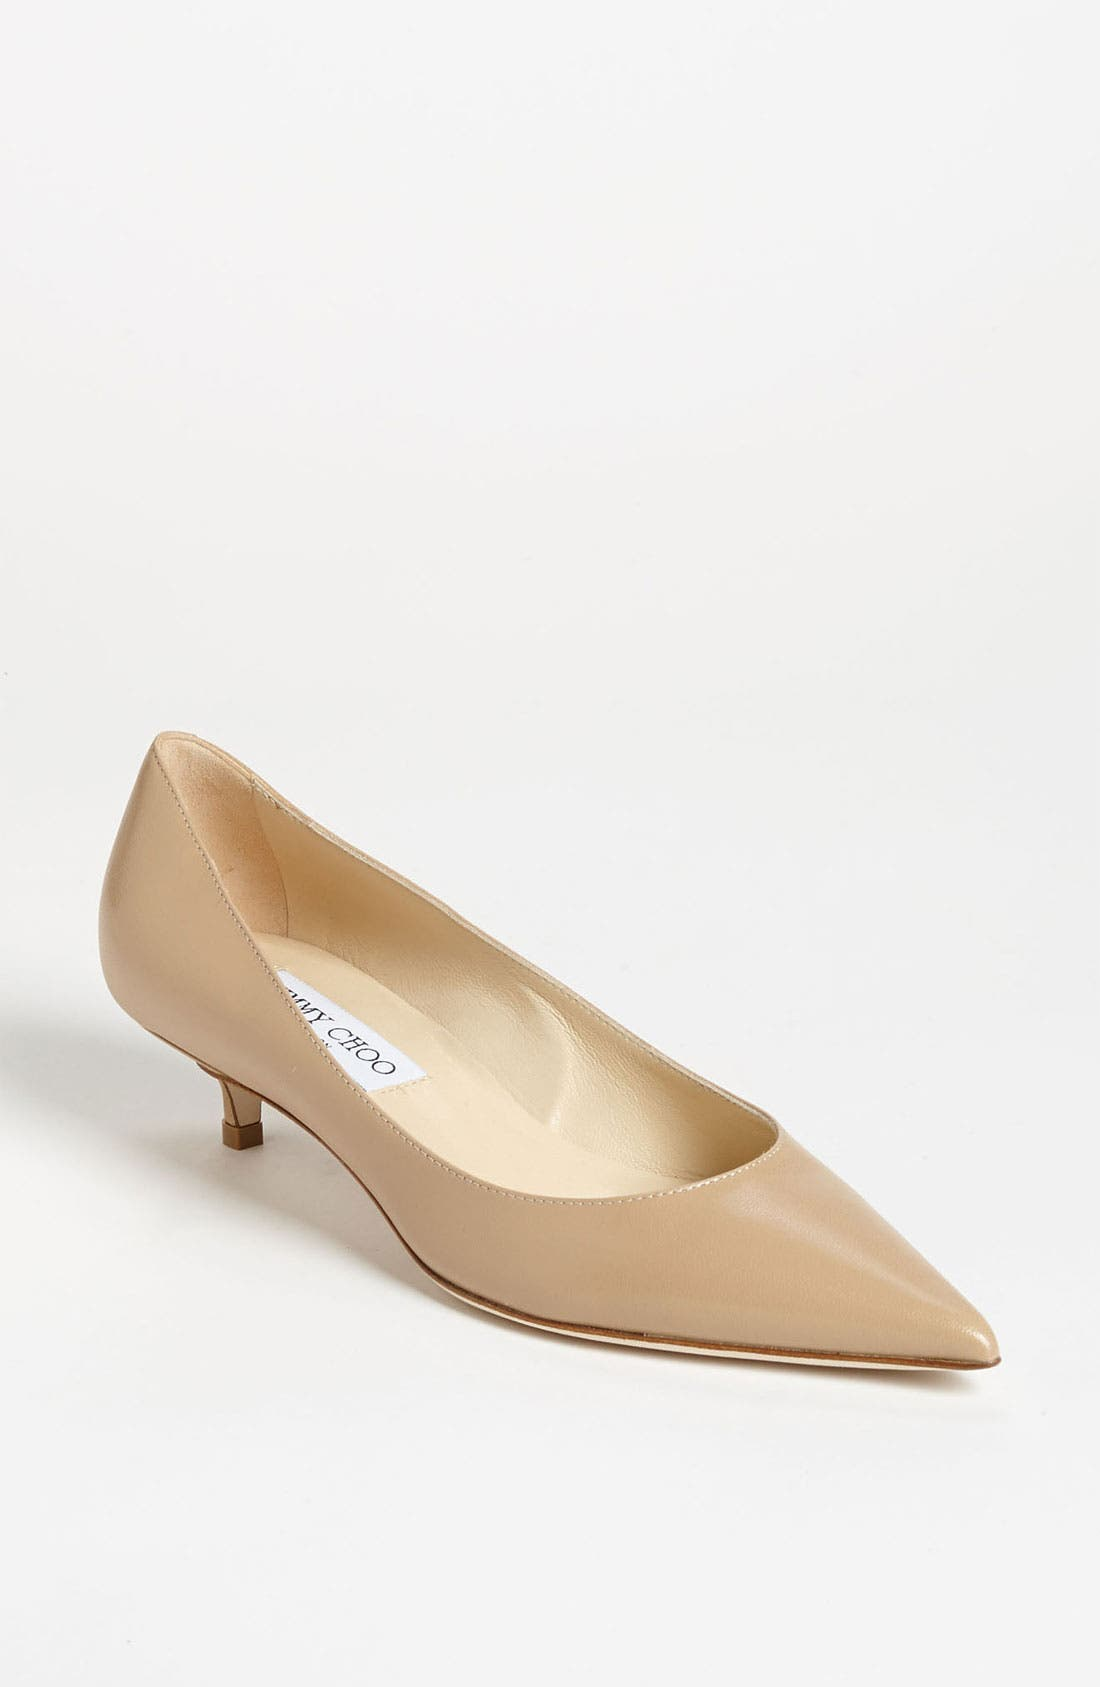 Main Image - Jimmy Choo 'Amelia' Pump